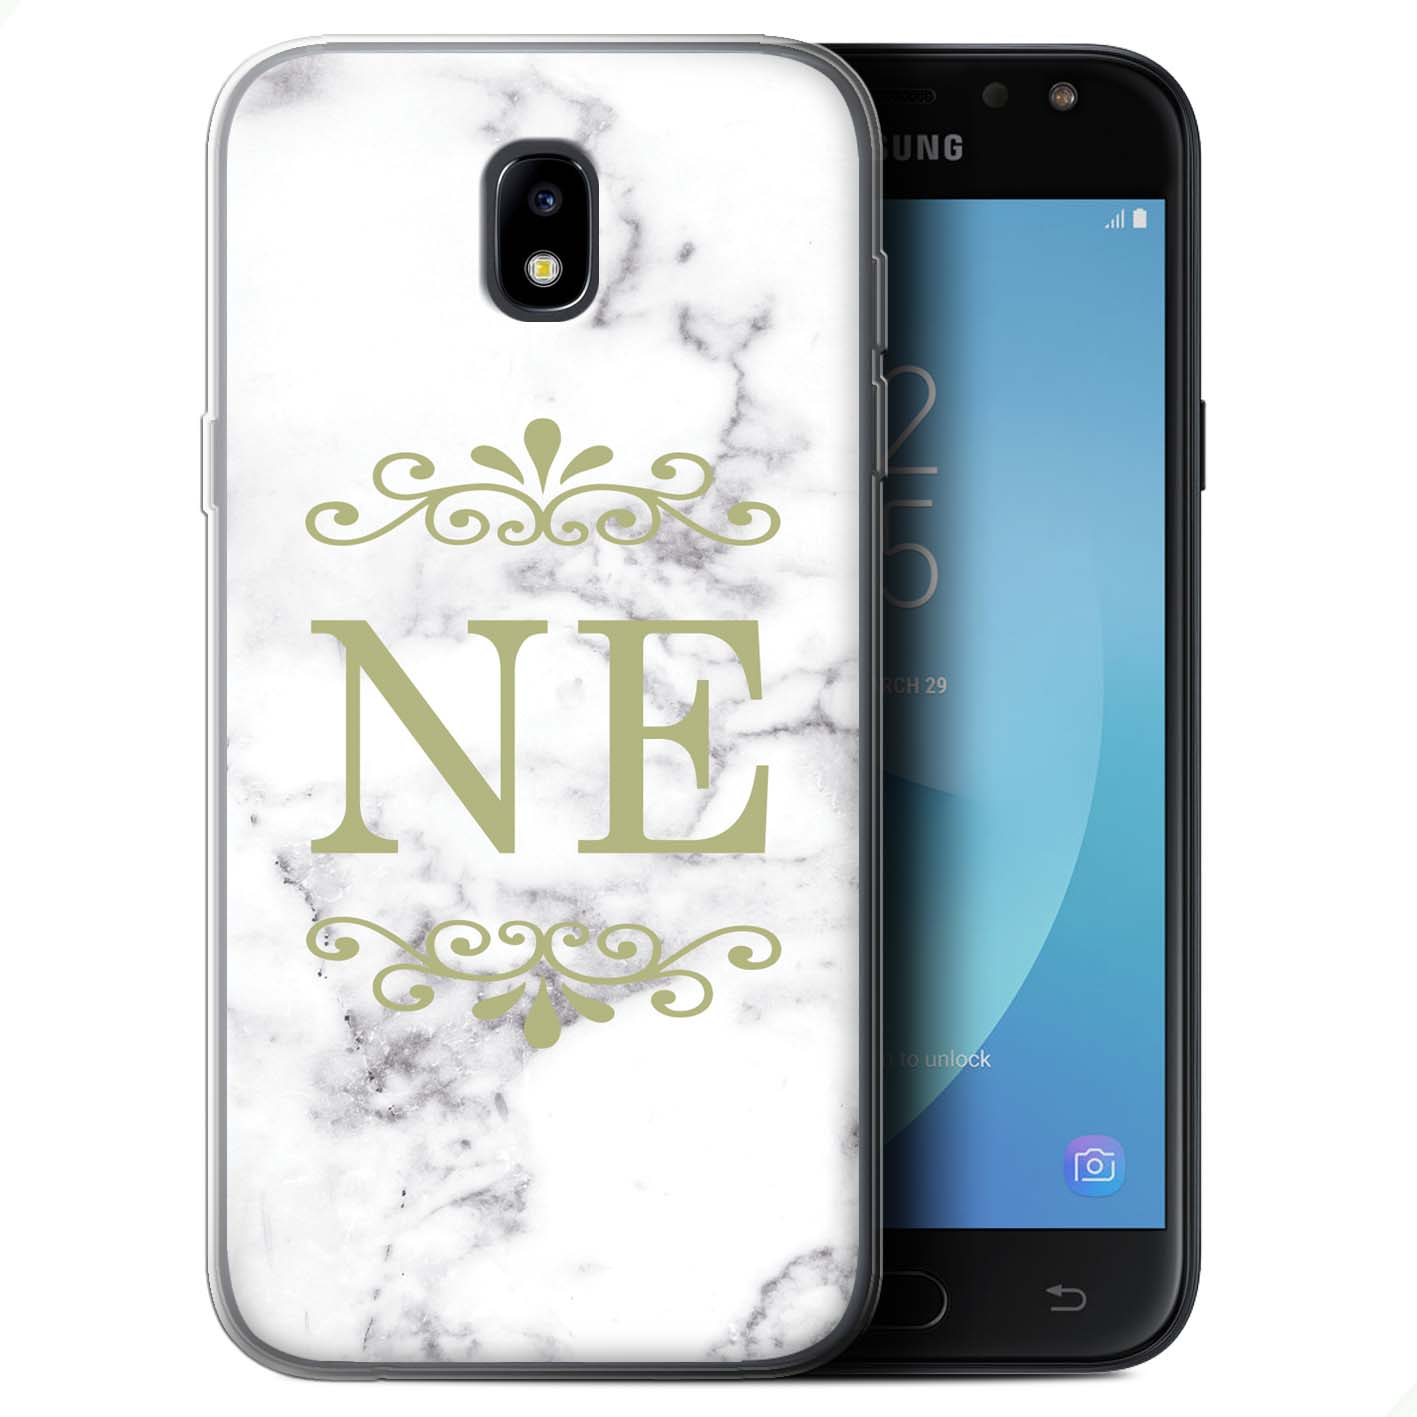 Personalised-White-Marble-Fashion-Case-Samsung-Galaxy-J5-2017-J530-Initial-Gel